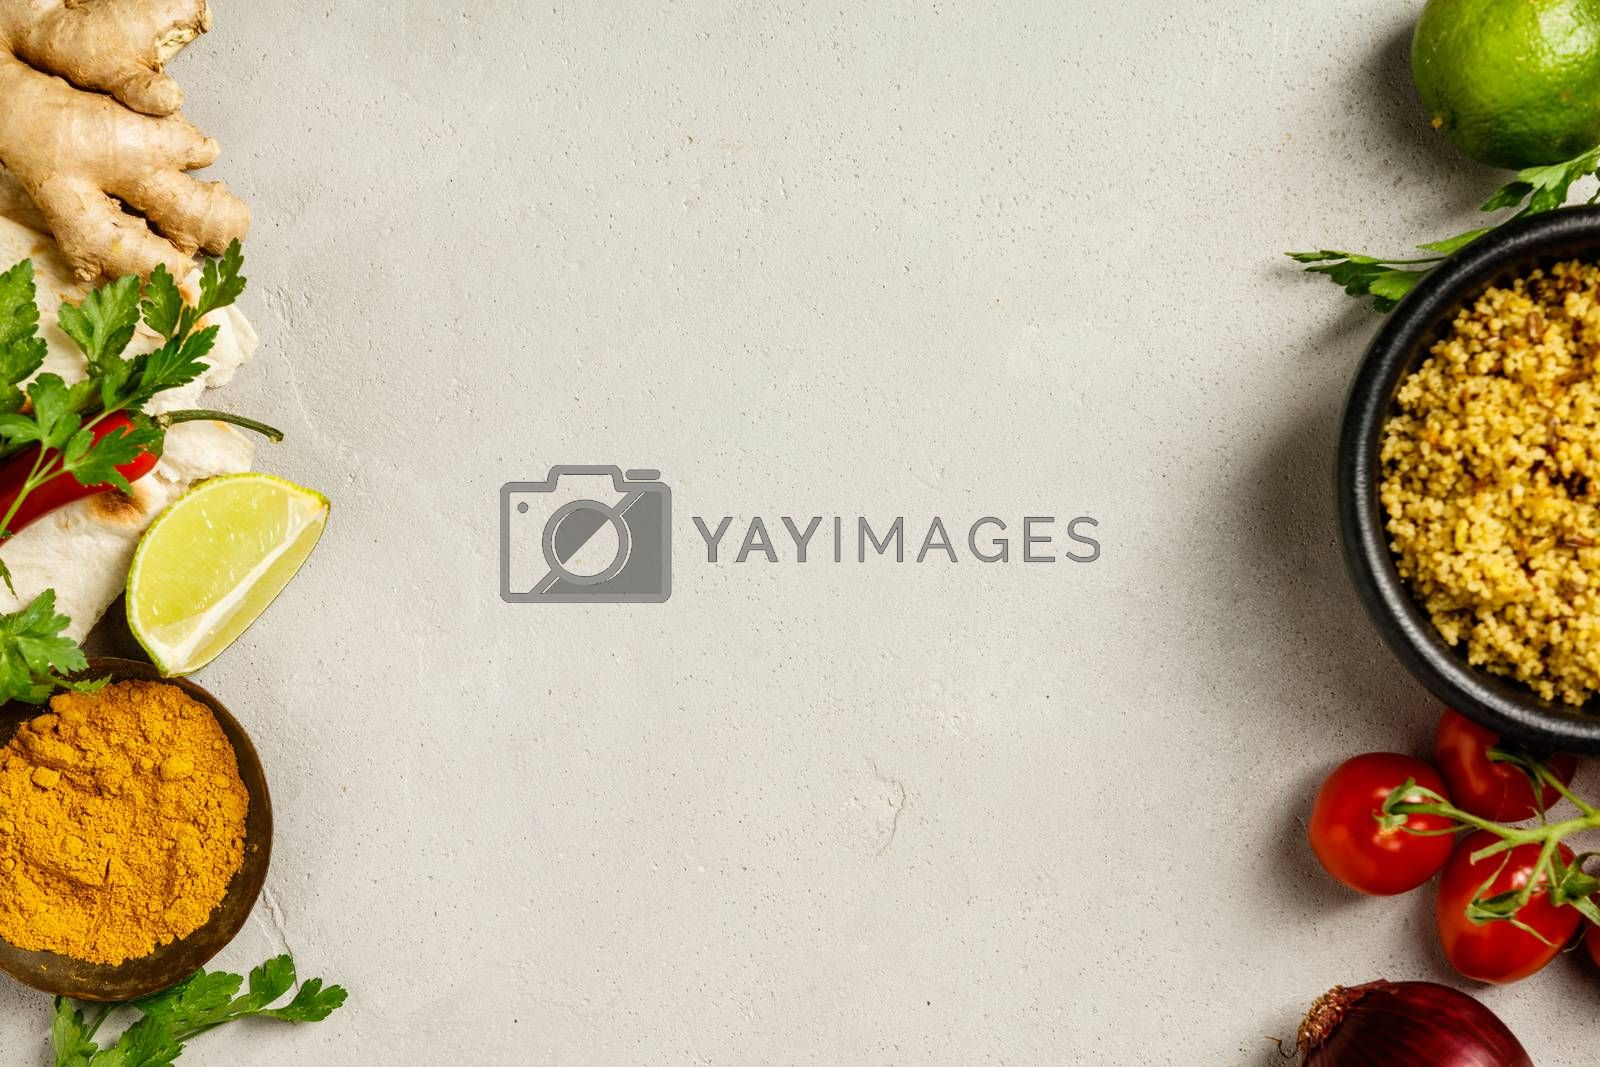 Couscous, naan bread, green leaf and cooking ingredients on concrete background. Flat lay. Healthy vegetarian food and cooking concept